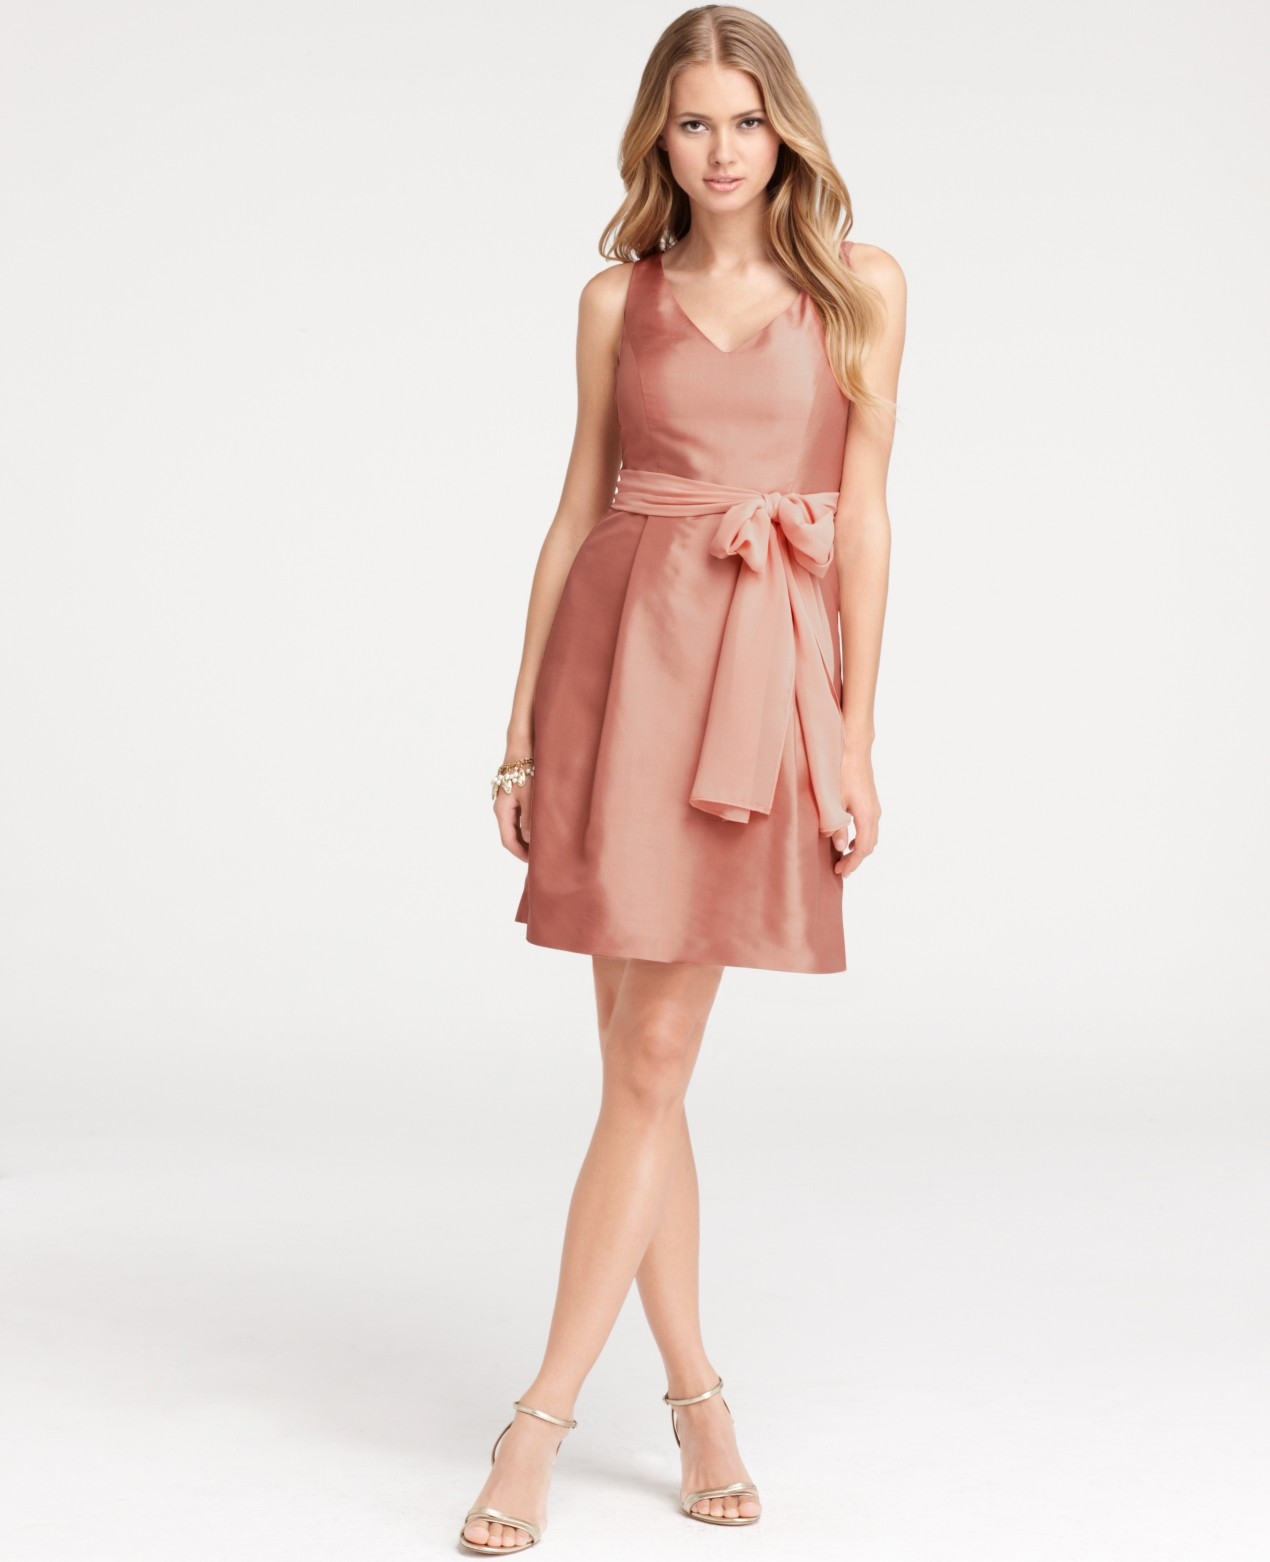 Bridesmaid dresses j crew ann taylor wedding guest dresses bridesmaid dresses j crew ann taylor 94 ombrellifo Images